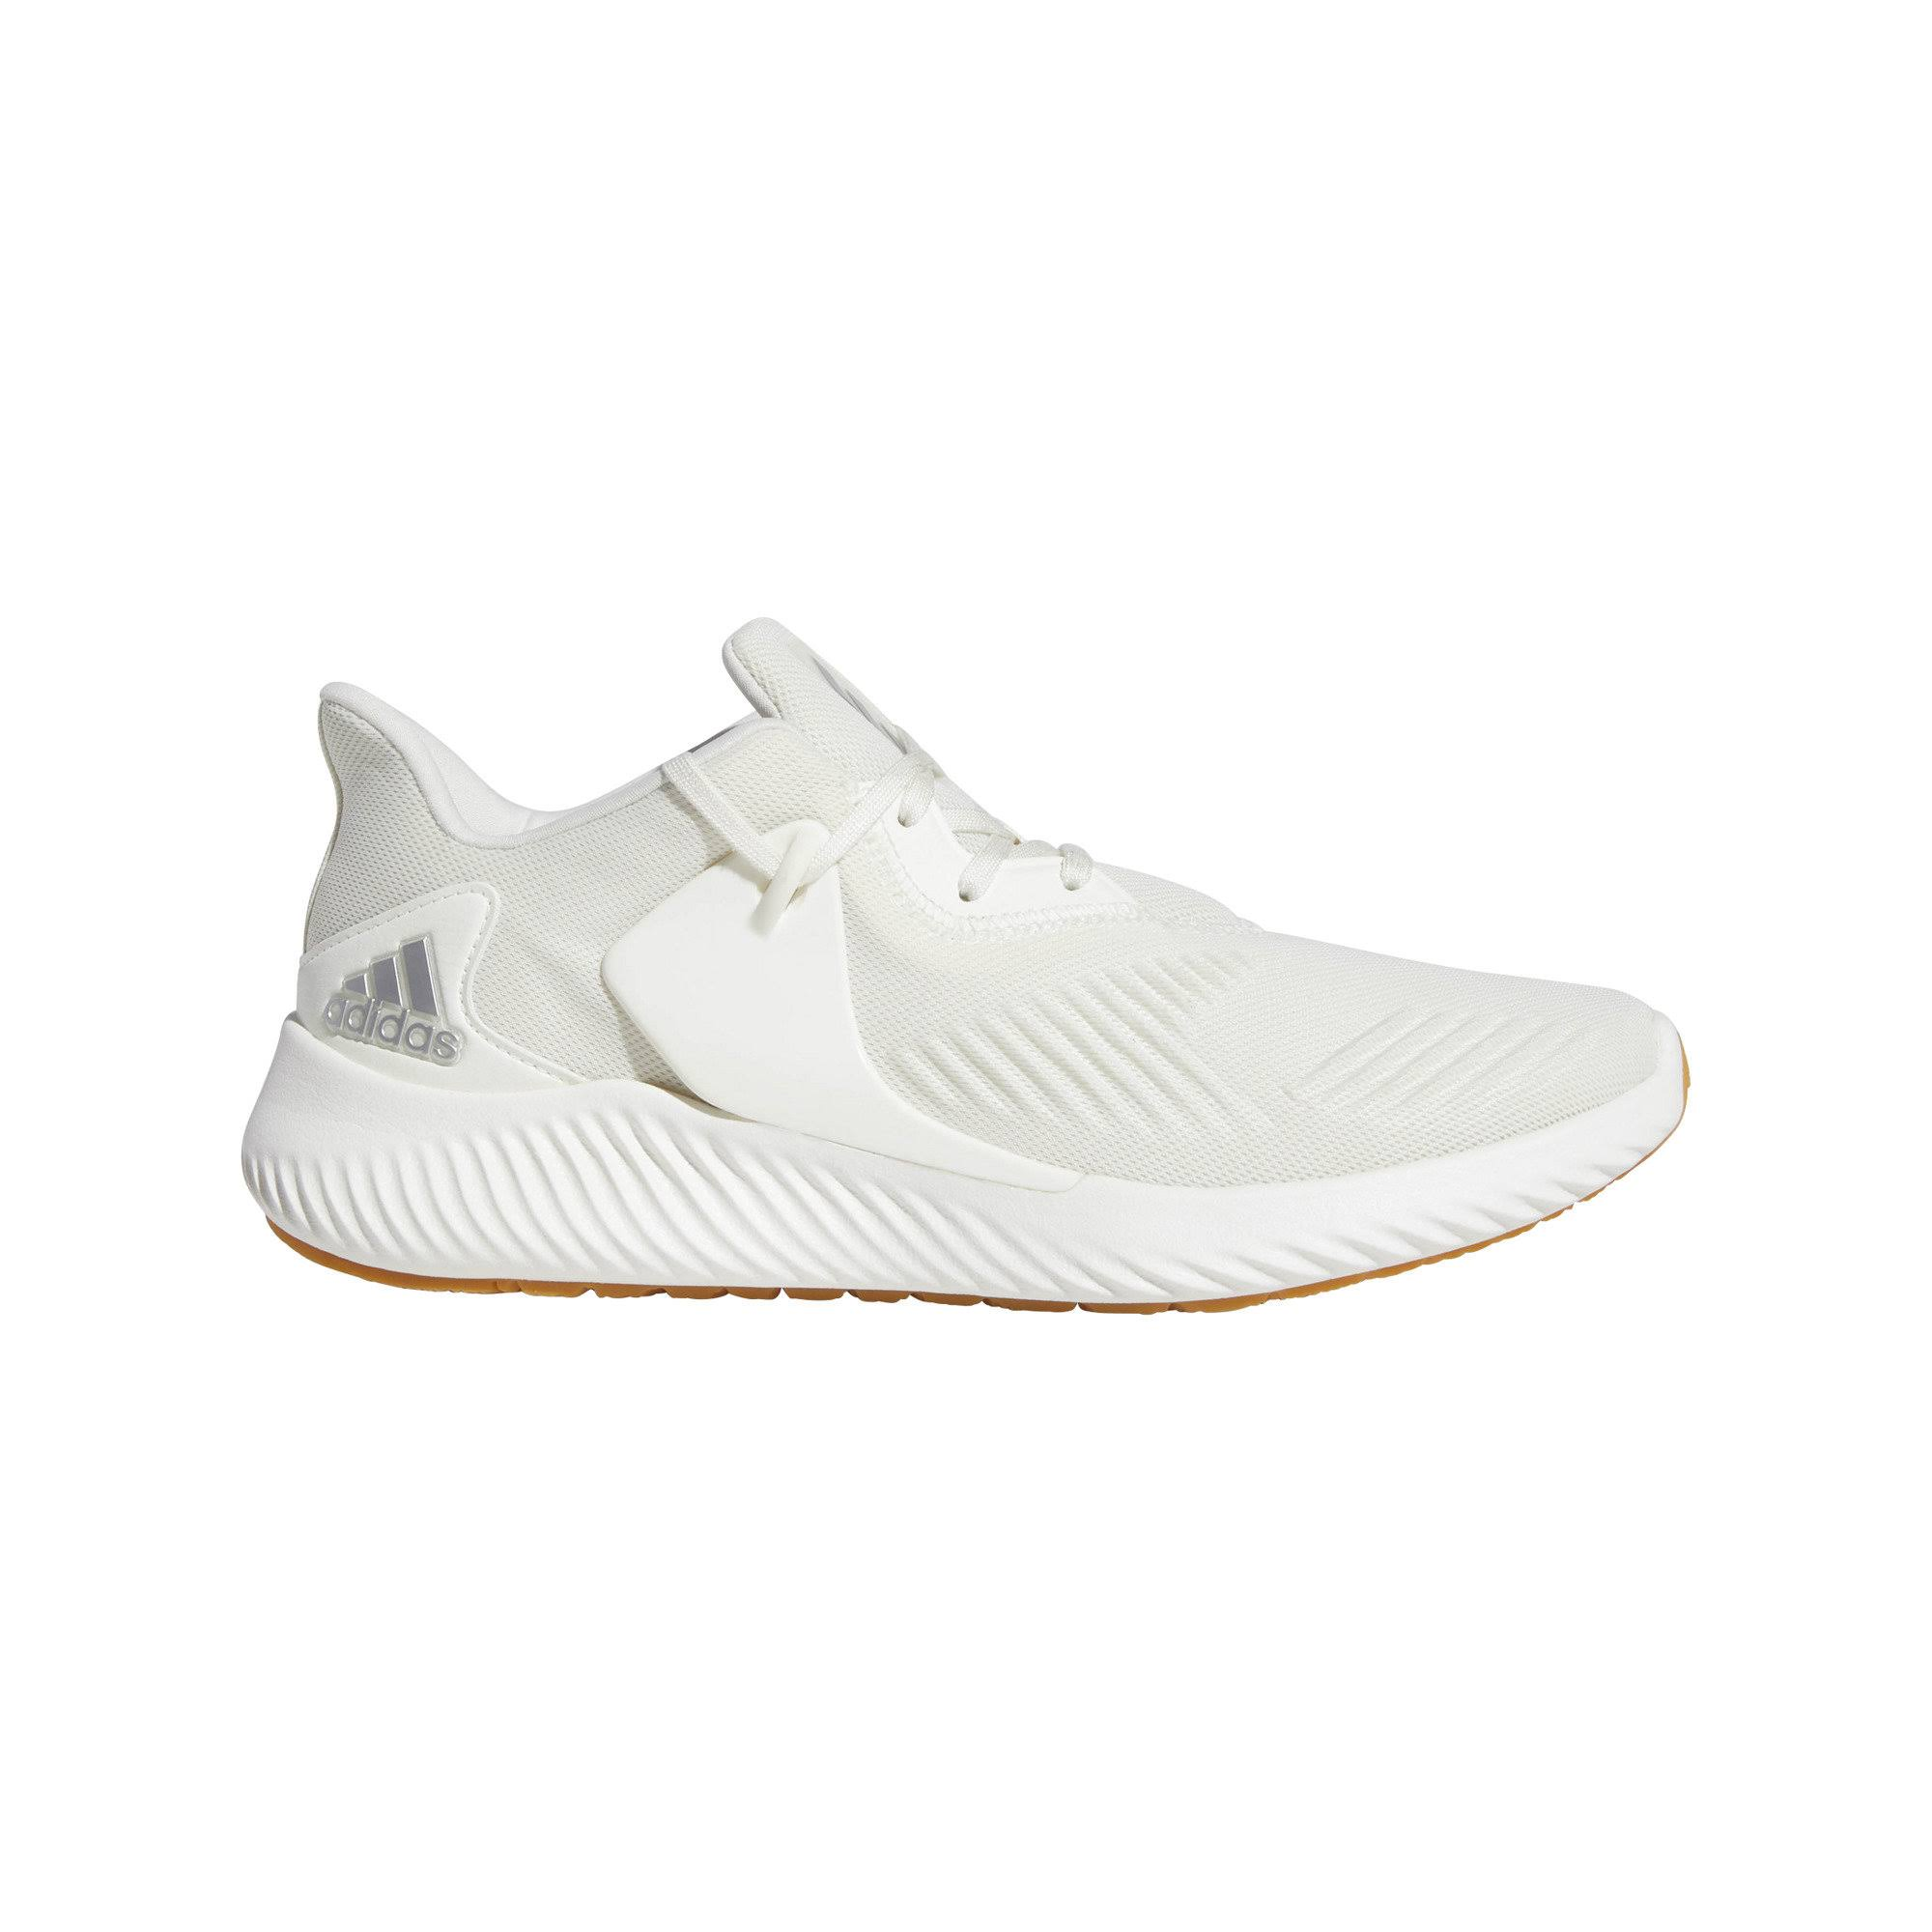 Adidas Alphabounce RC 2.0 Shoes Running - Mens - White